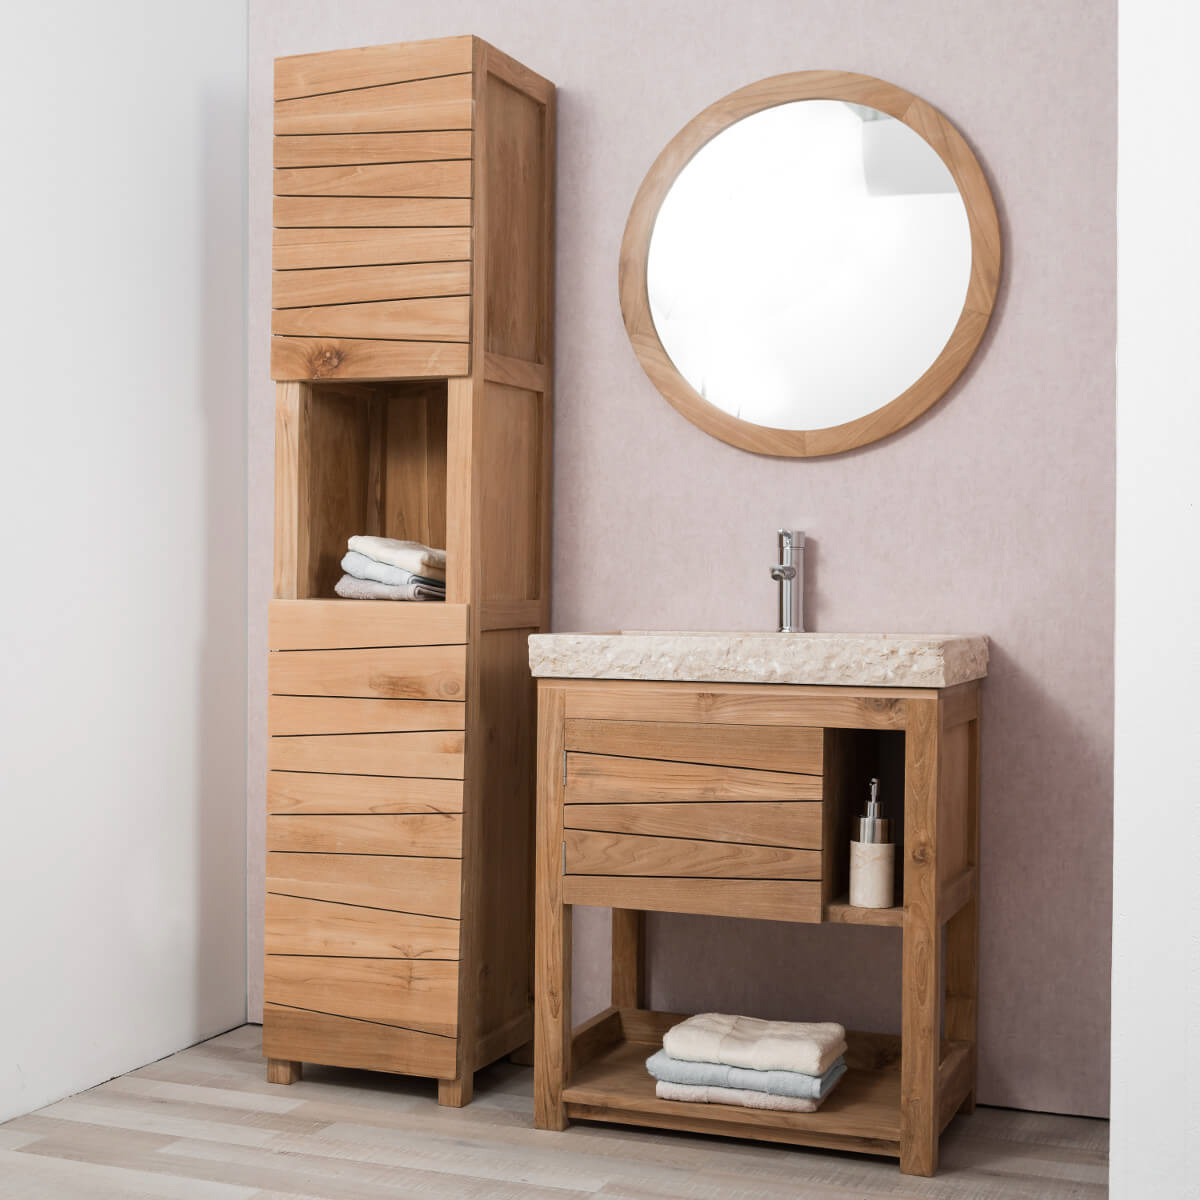 miroir de salle de bain en bois teck massif hublot rond naturel d 68 cm. Black Bedroom Furniture Sets. Home Design Ideas